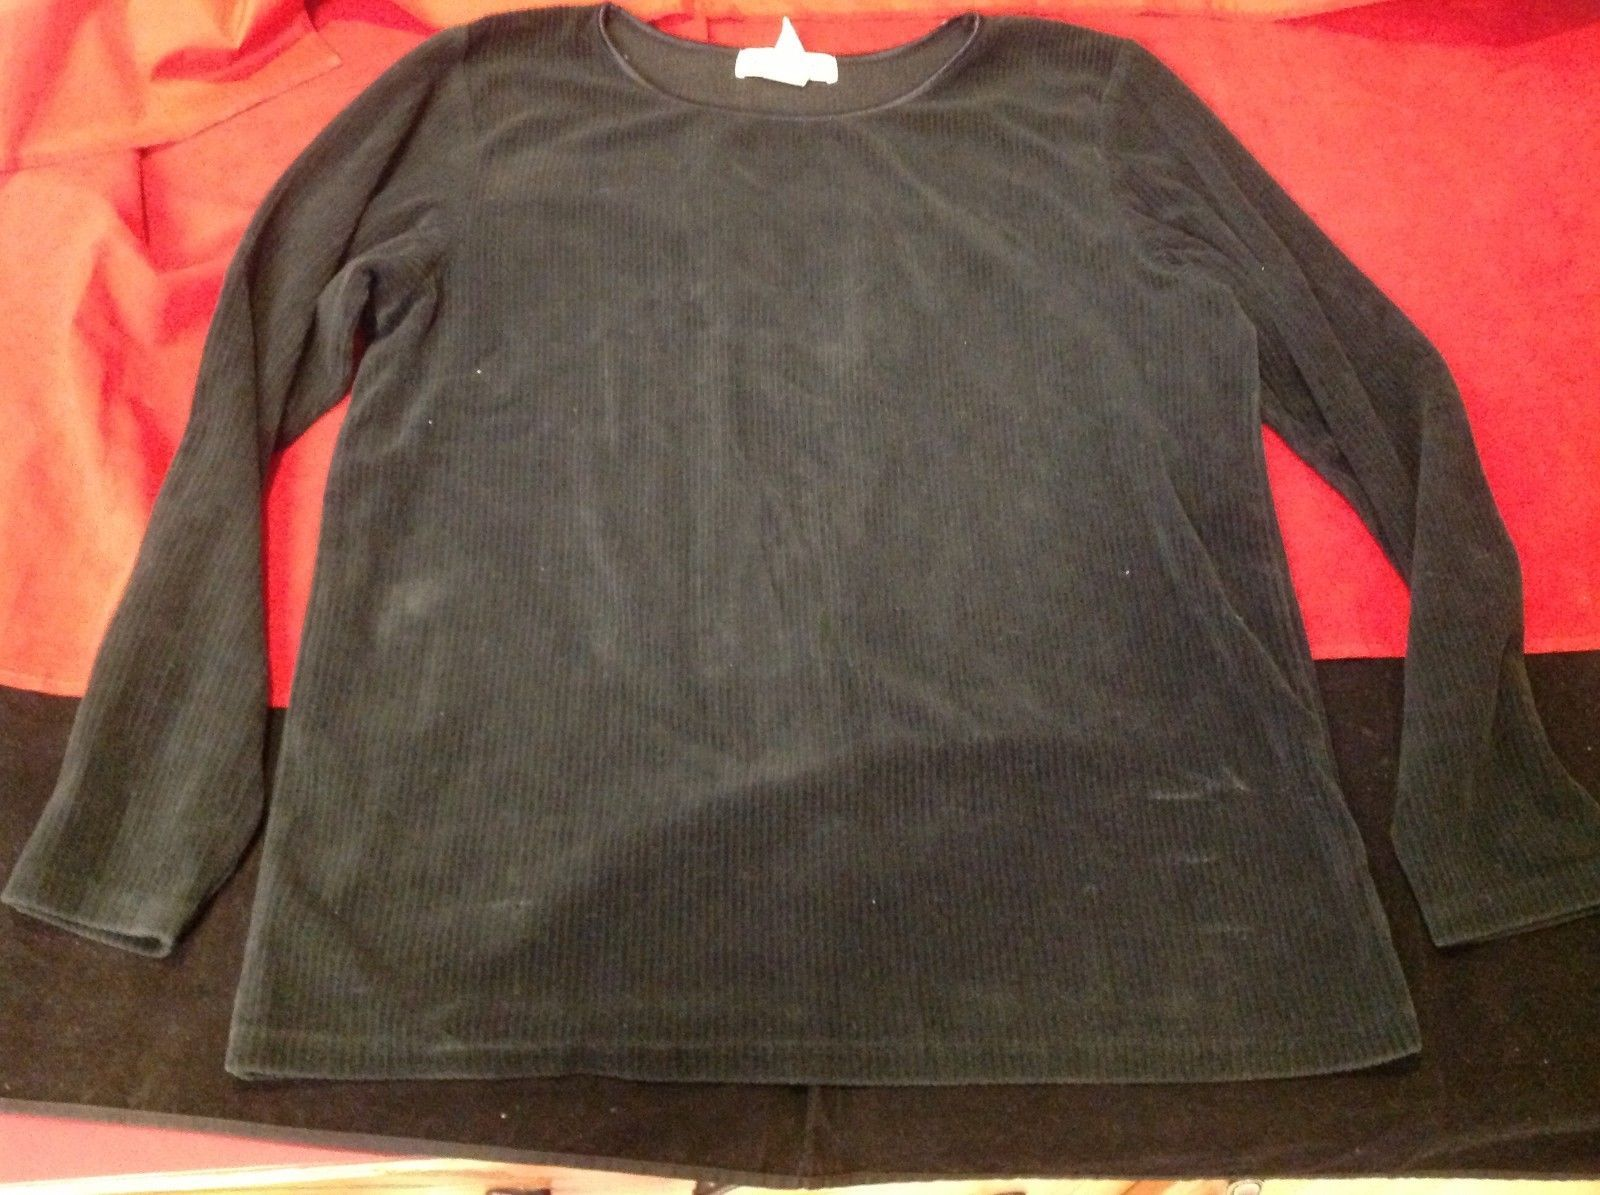 Eddie Bauer sweater women's size xs color black